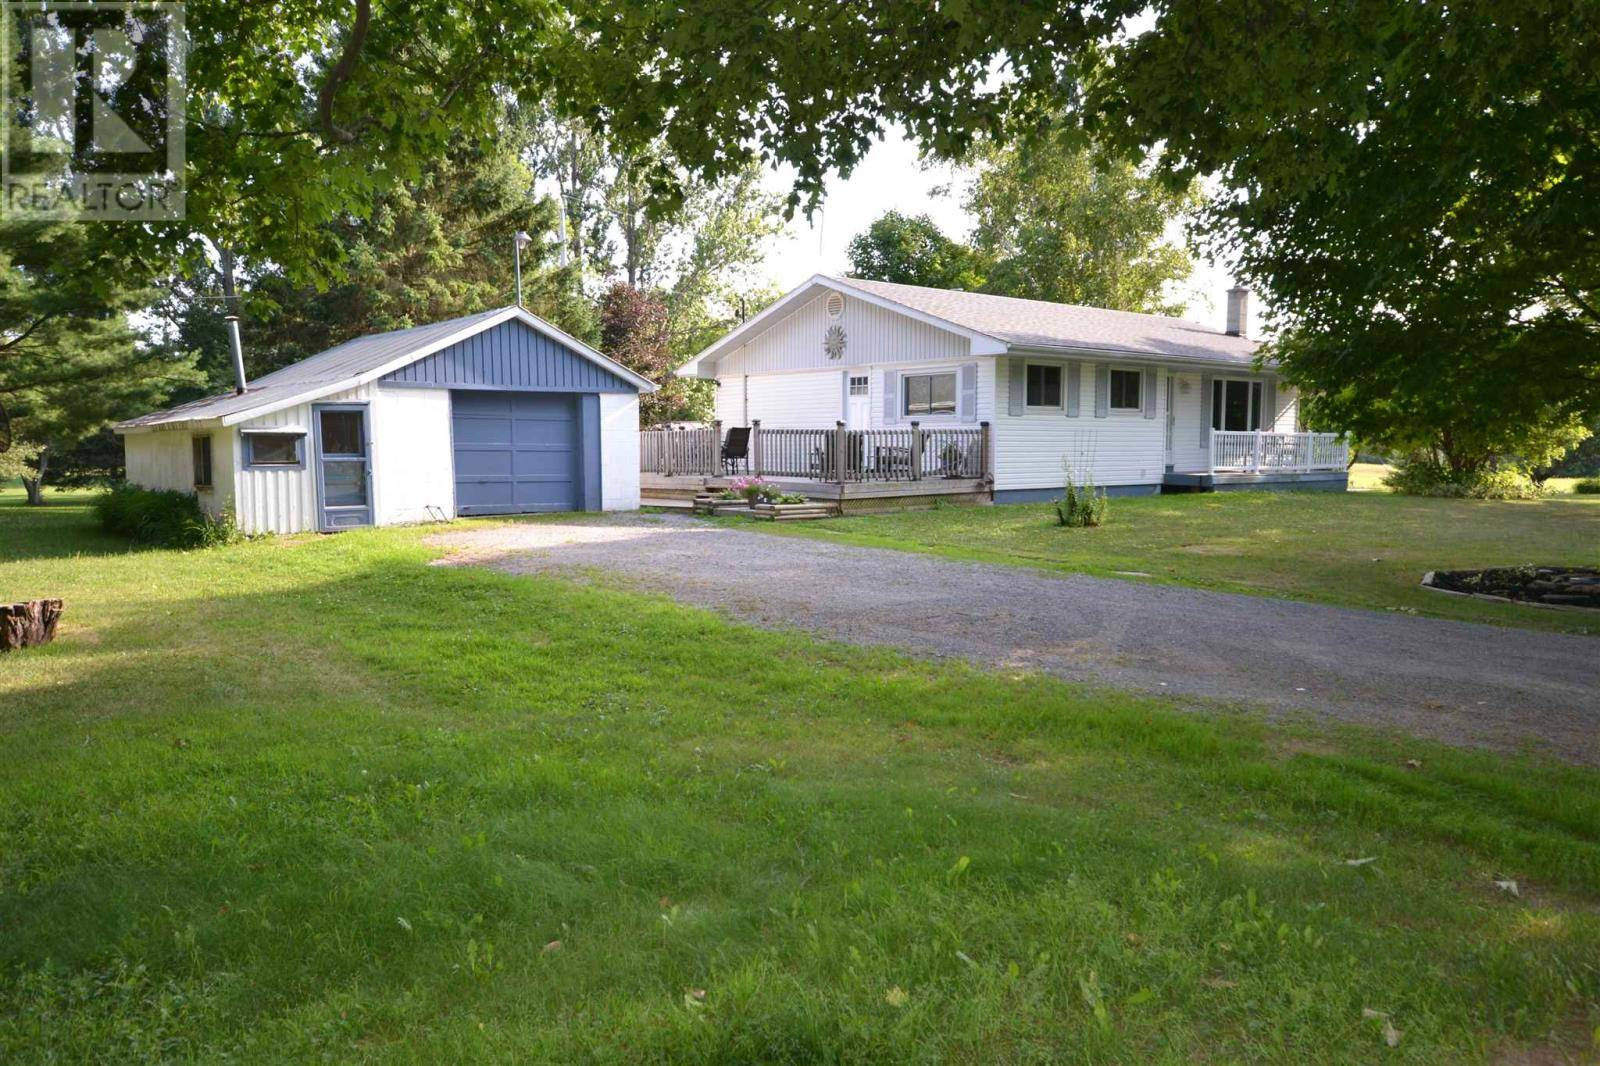 House for sale at 5230 Wilmer Rd South Frontenac Ontario - MLS: K19005128